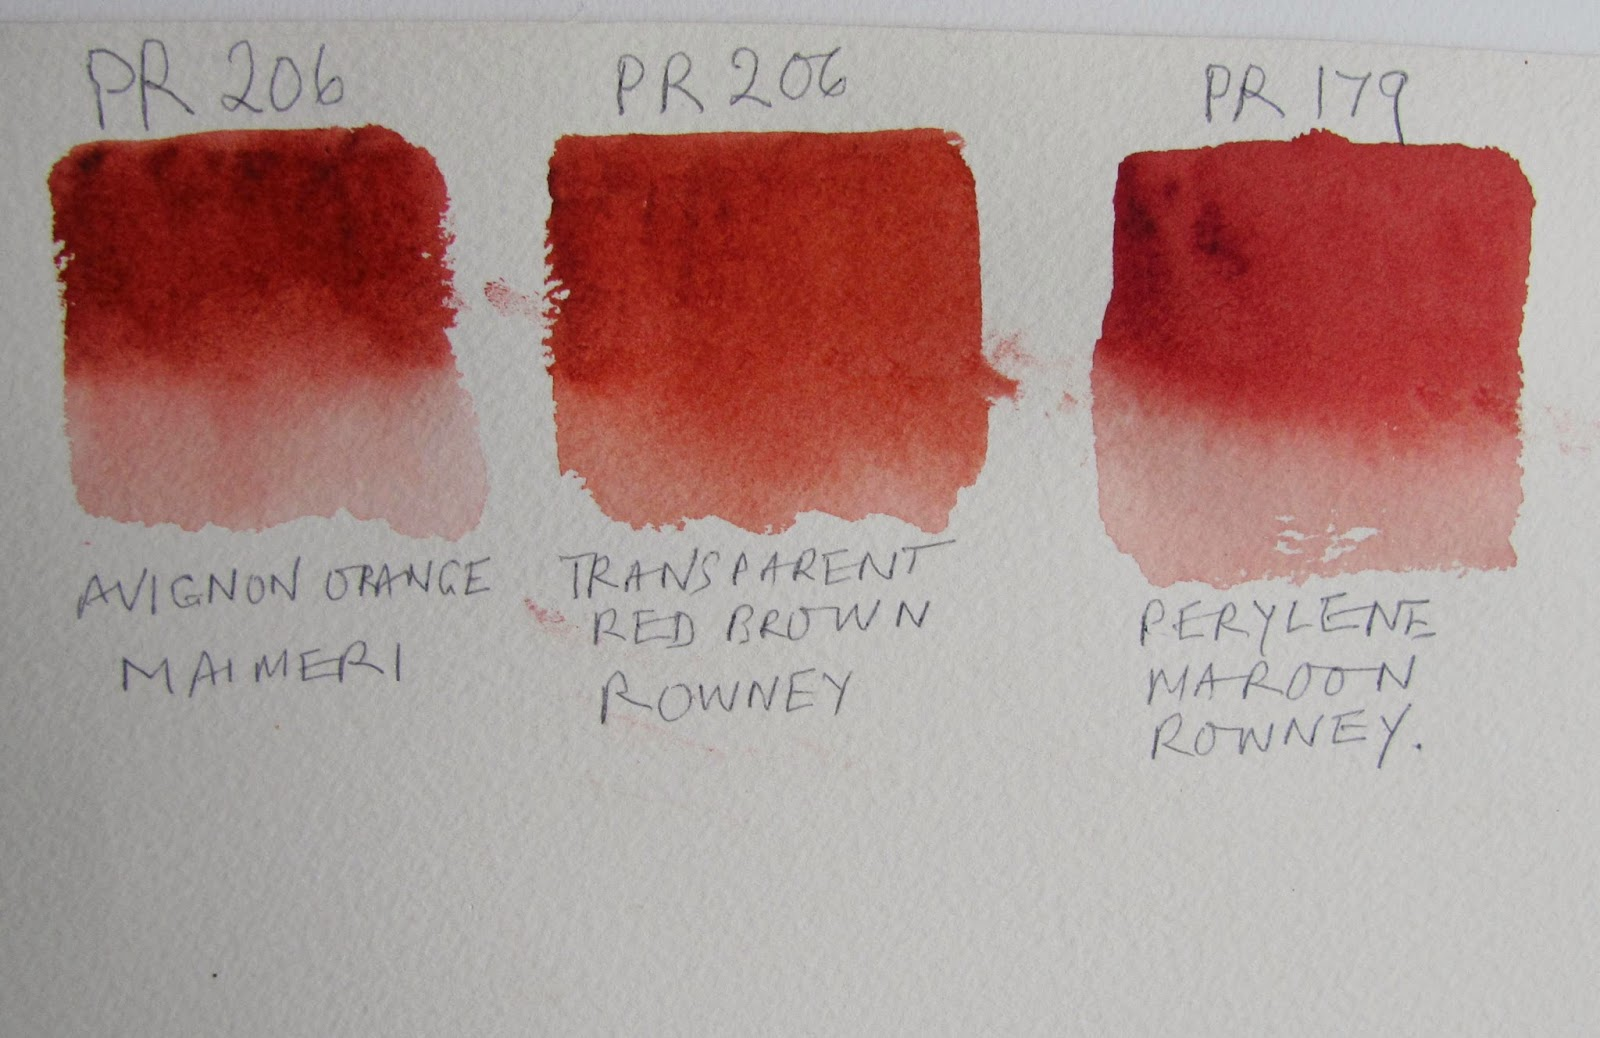 The Watercolour Log Quinacridone Maroon Pr 206 Pigment